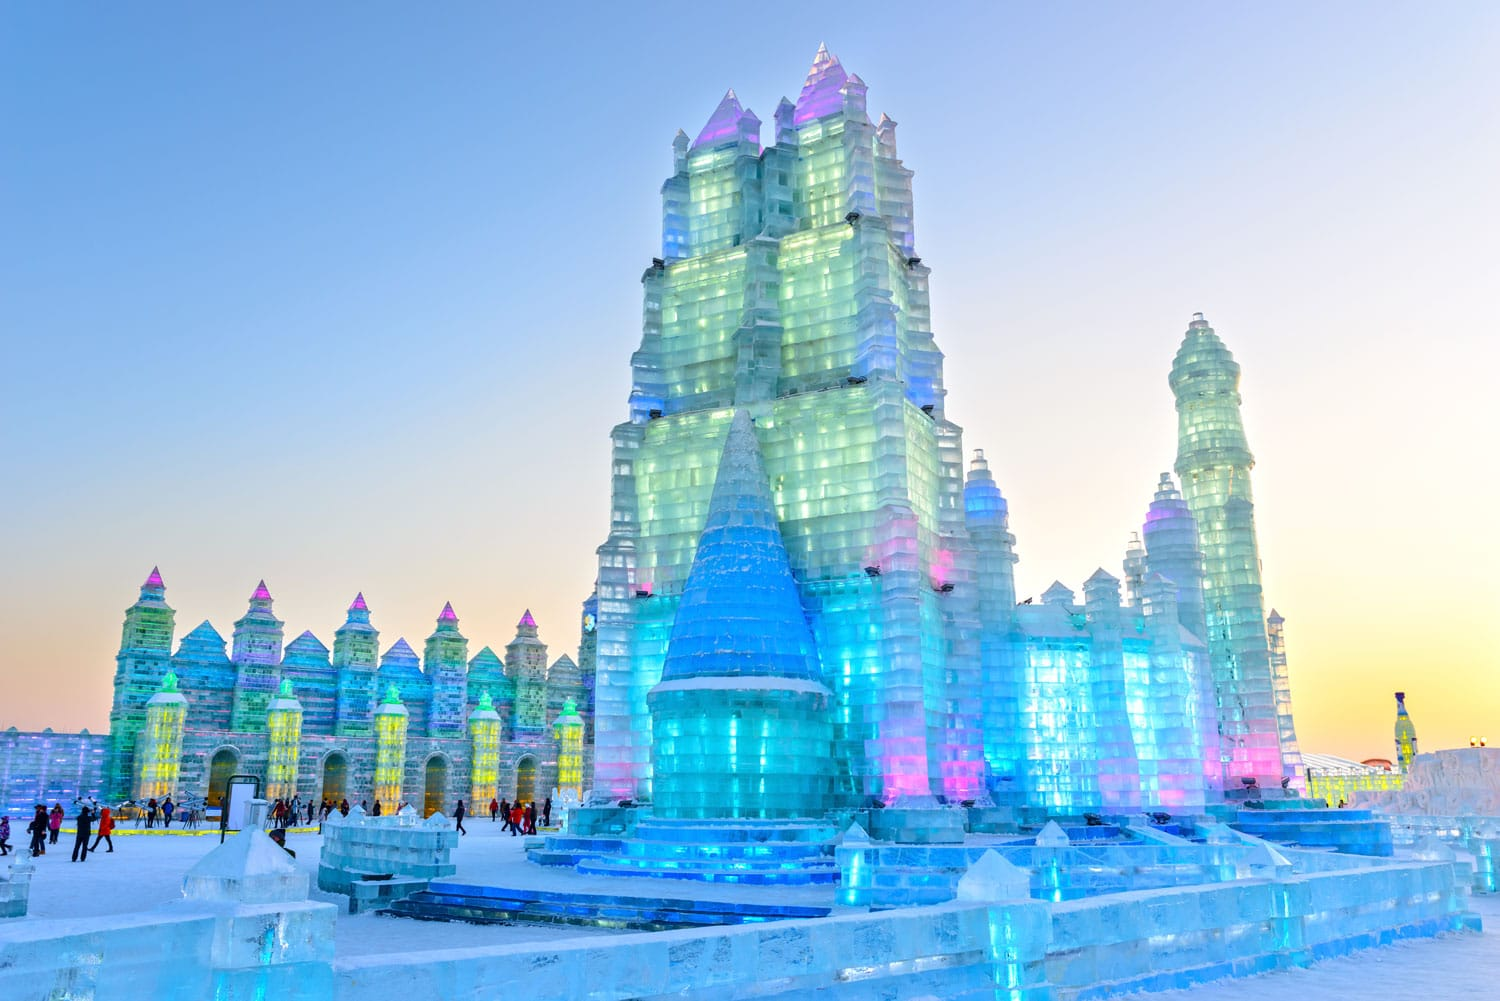 Ice building in Harbin Ice and Snow World, China